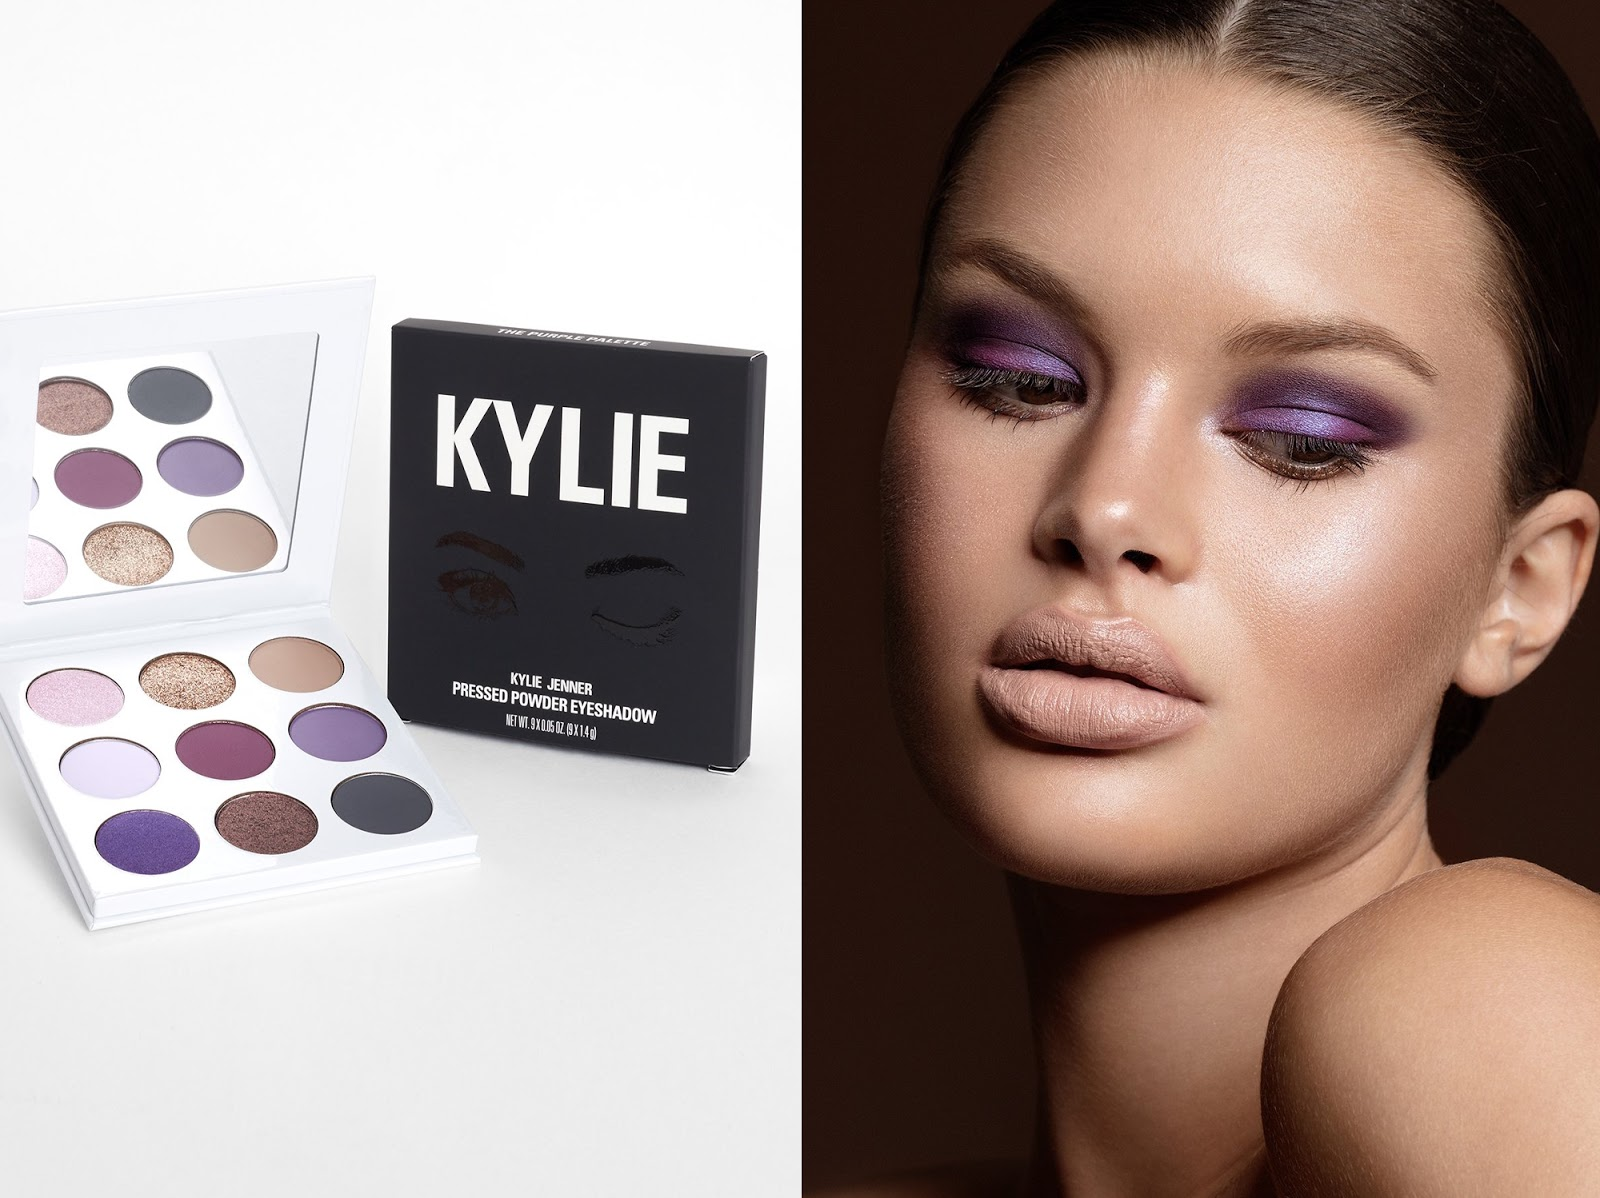 urban decay morphe kat von d kylie jenner cosmetics winter dark smoky eyeshadow palette review